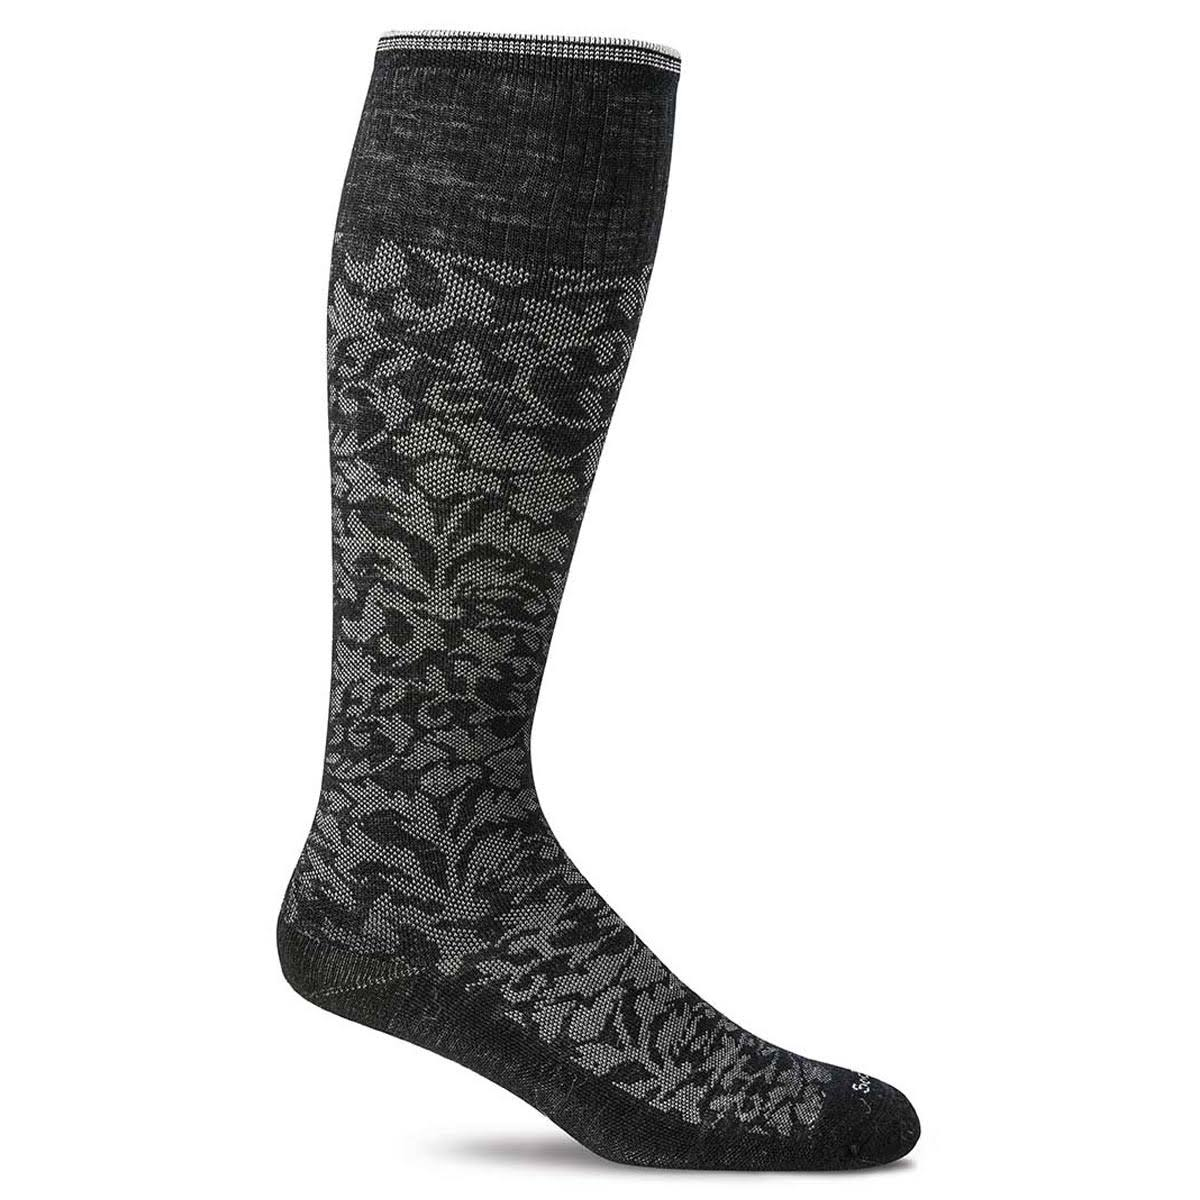 Sockwell Damask Knee High Multi Women's Socks - Black